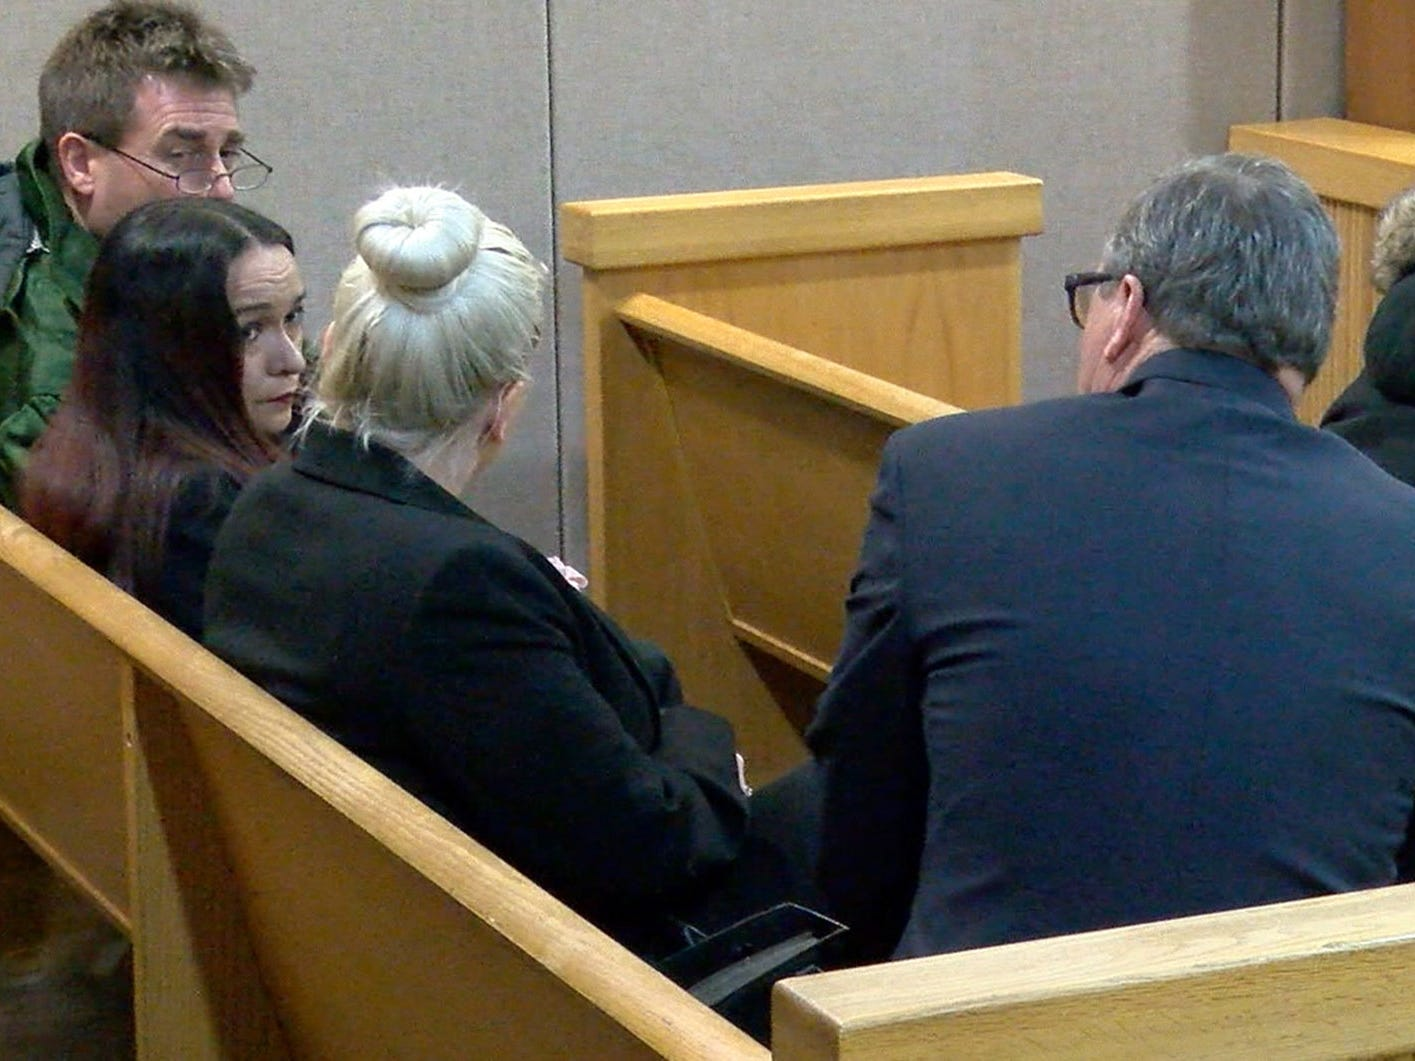 Raquel Garajau's mother Ruth (left) speaks with her attorney Robert Honecker in the row behind Trupal Patel's mother Rita in State Superior Court courtroom in Freehold Friday, January 18, 2019.   Garajau received a 33 year prison term for felony murder and other offenses related to the death of marijuana dealer Trupal Patel.